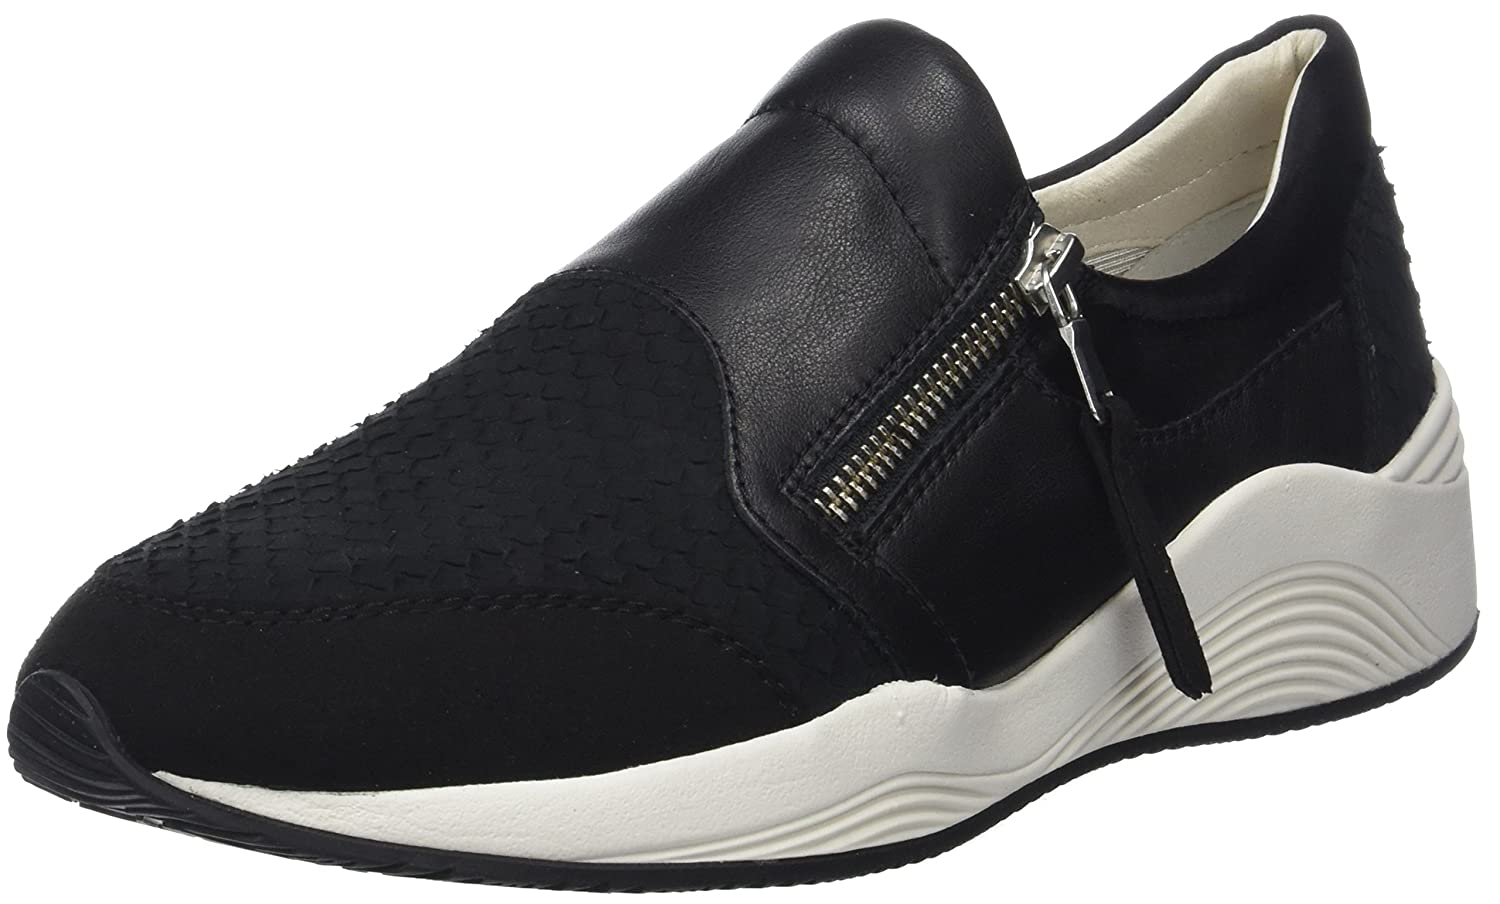 Black Geox Women's D OMAYA Sneakers